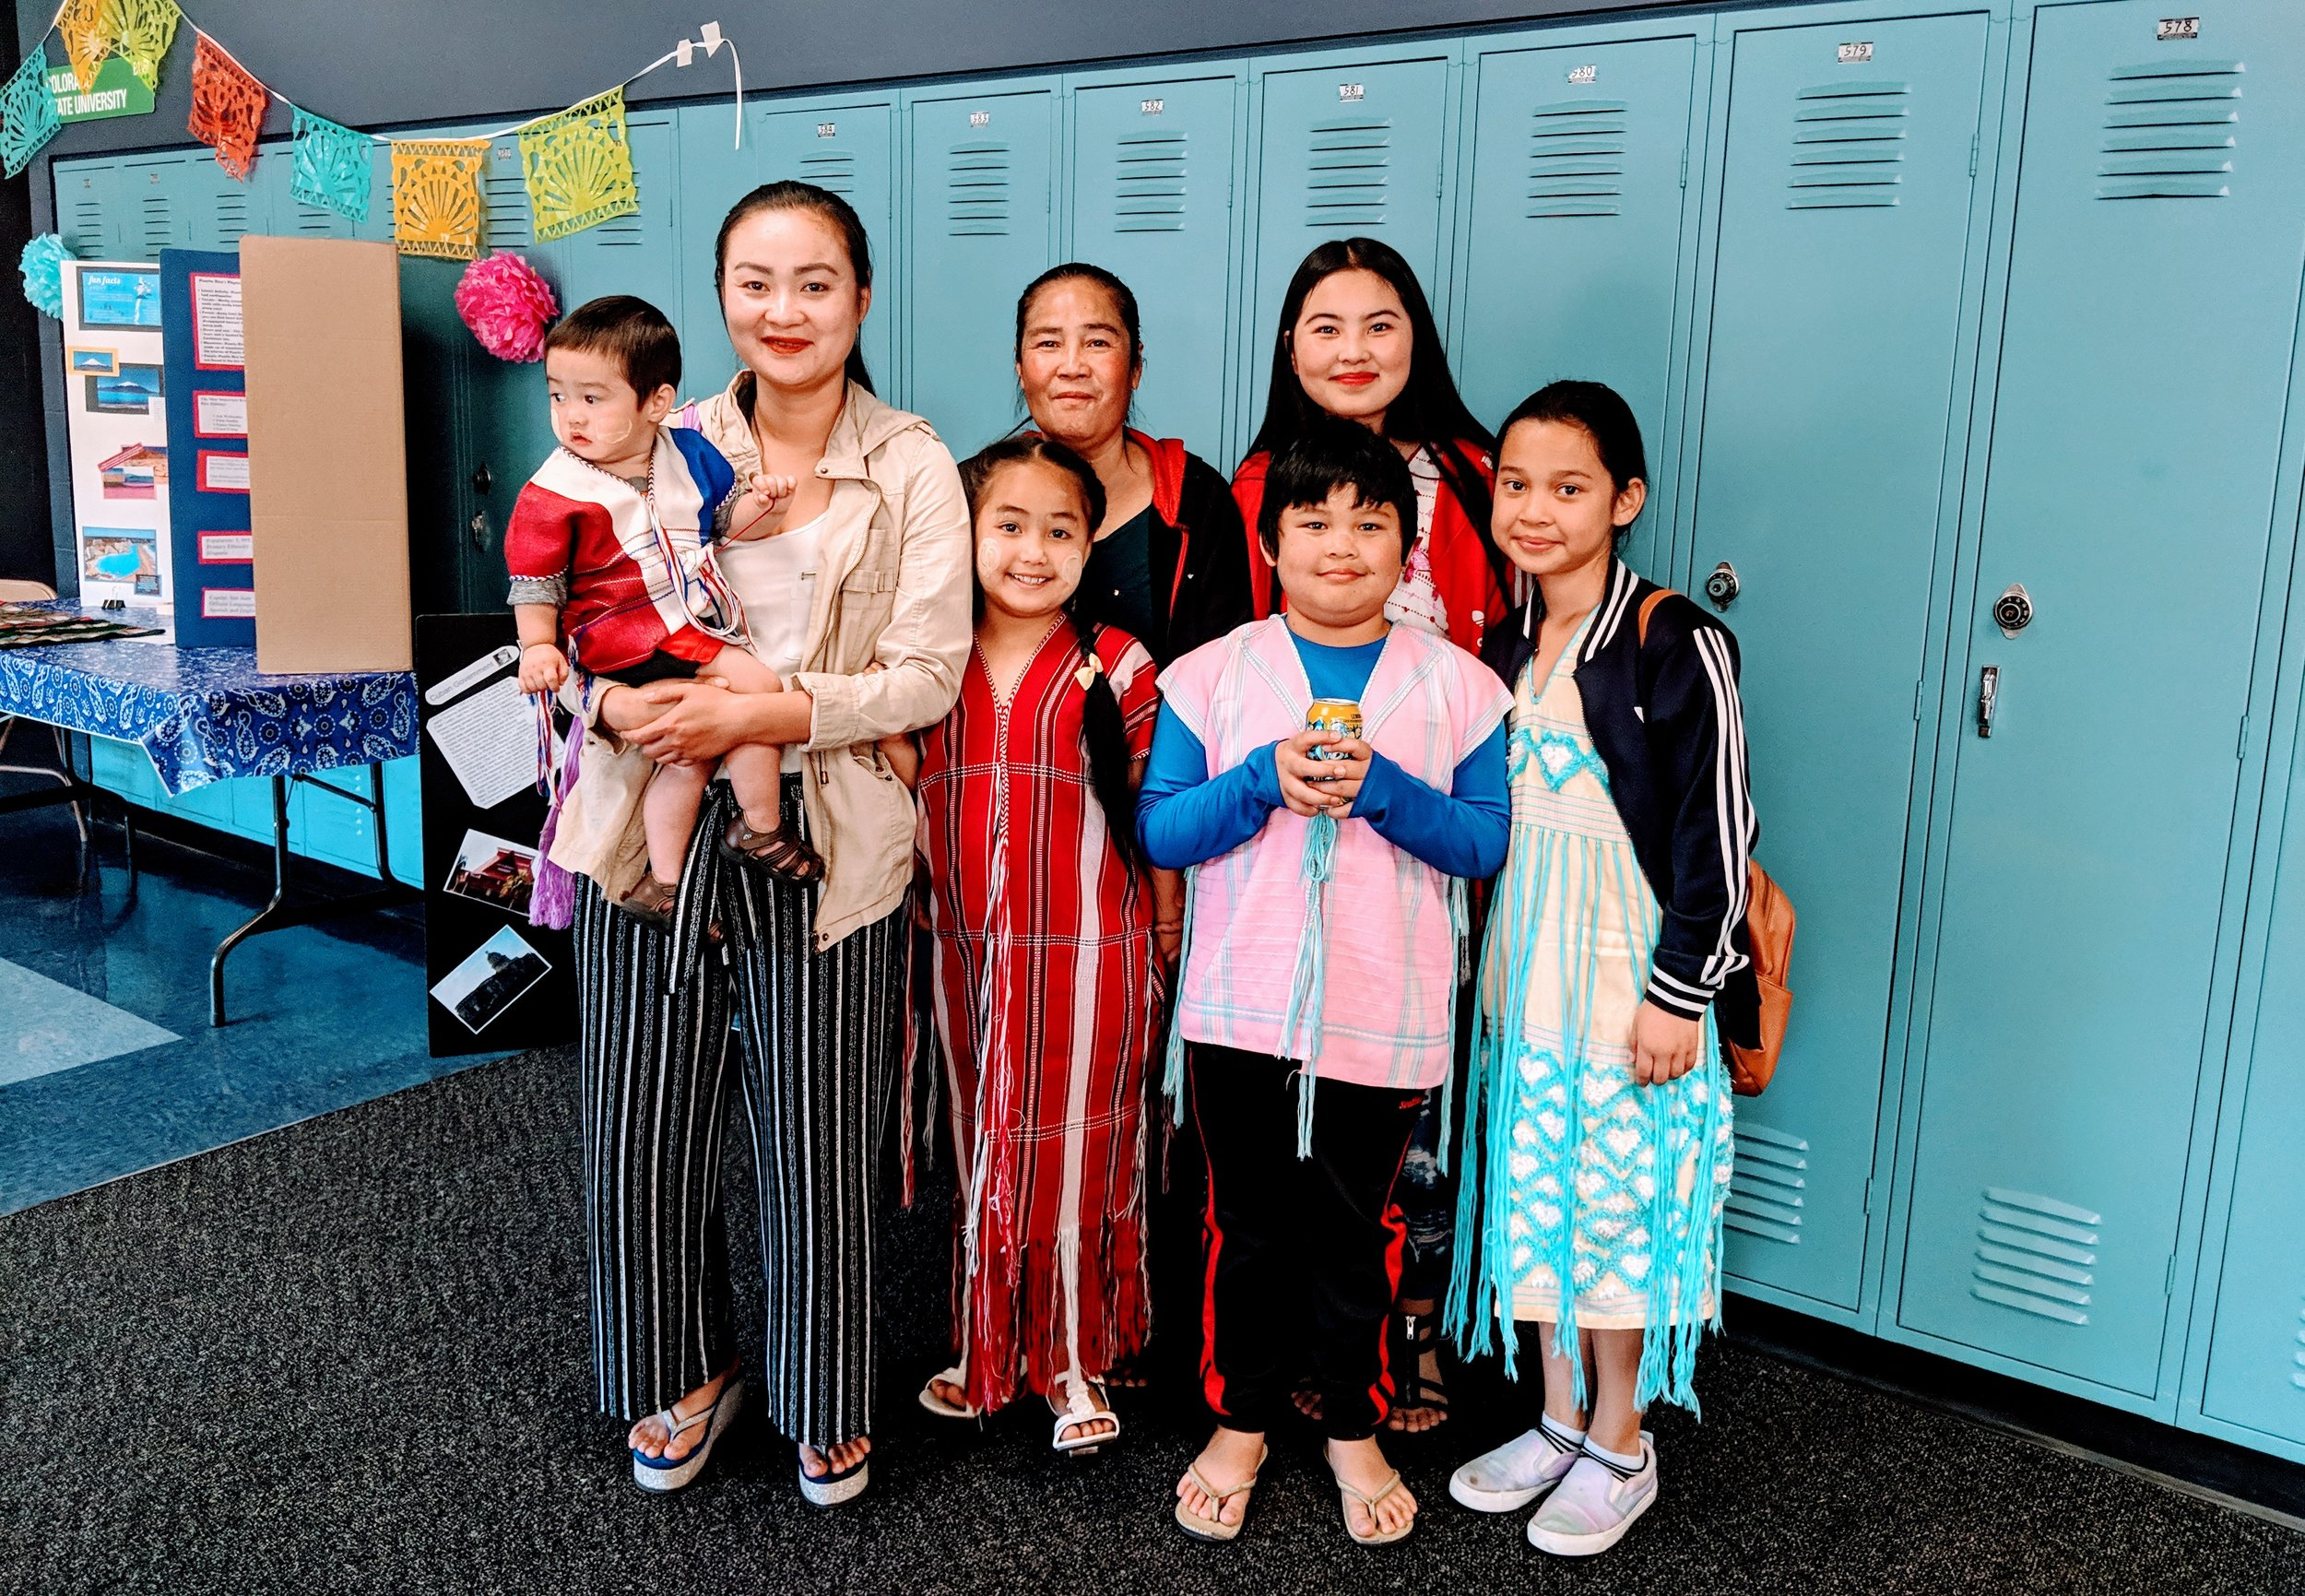 Karen-Burmese family at International Night, Place Bridge Academy, Denver. May 2016. Photo: Louise El Yaafouri. The following is an excerpt from   The Newcomer Student: An Educator's Guide to Aid Transition   (Rowman & Littlefield, 2016).